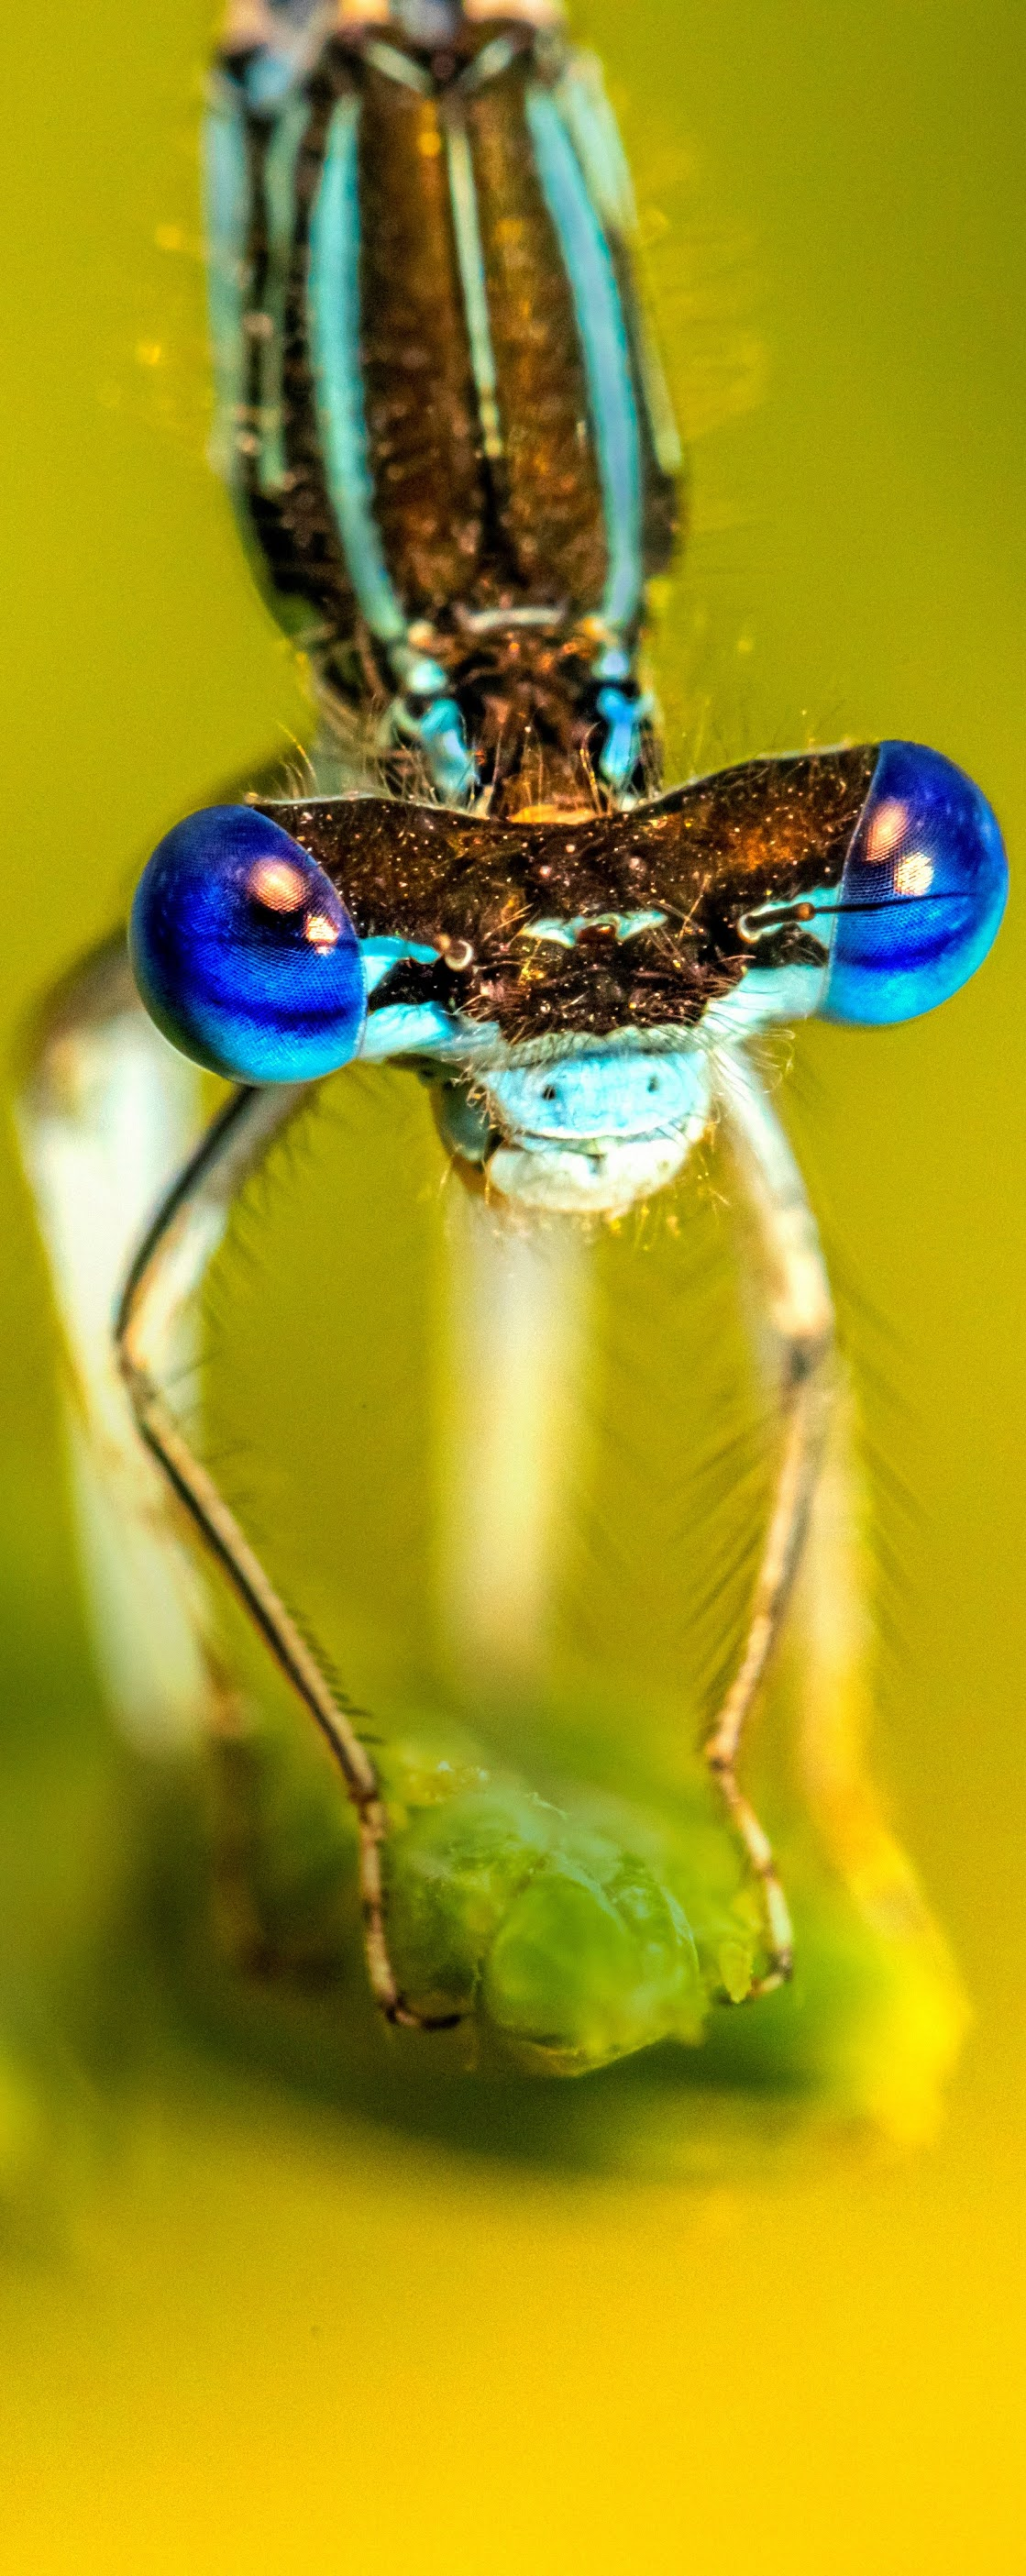 A dragonfly with blue eyes.